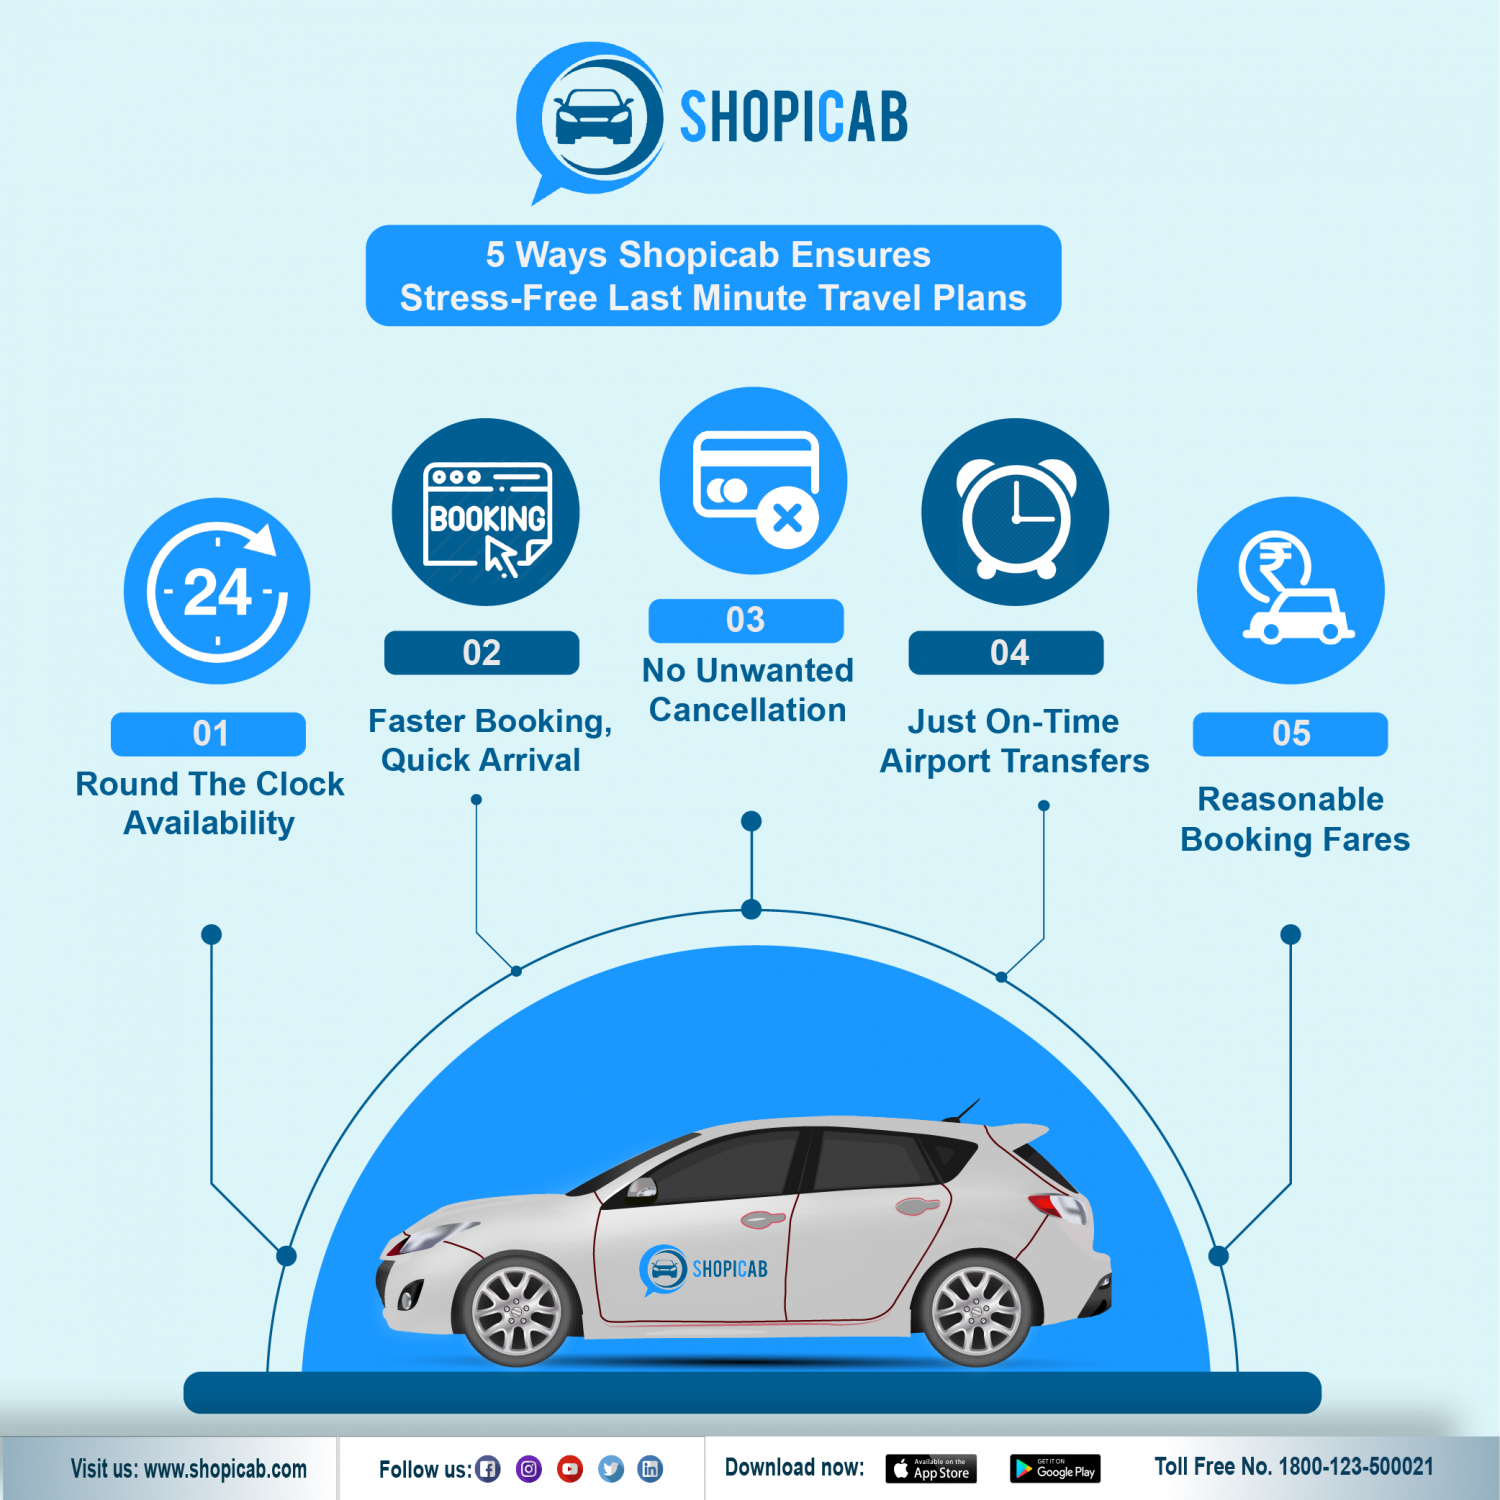 5 Ways Shopicab Ensures Stress-Free Last Minute Travel Plans